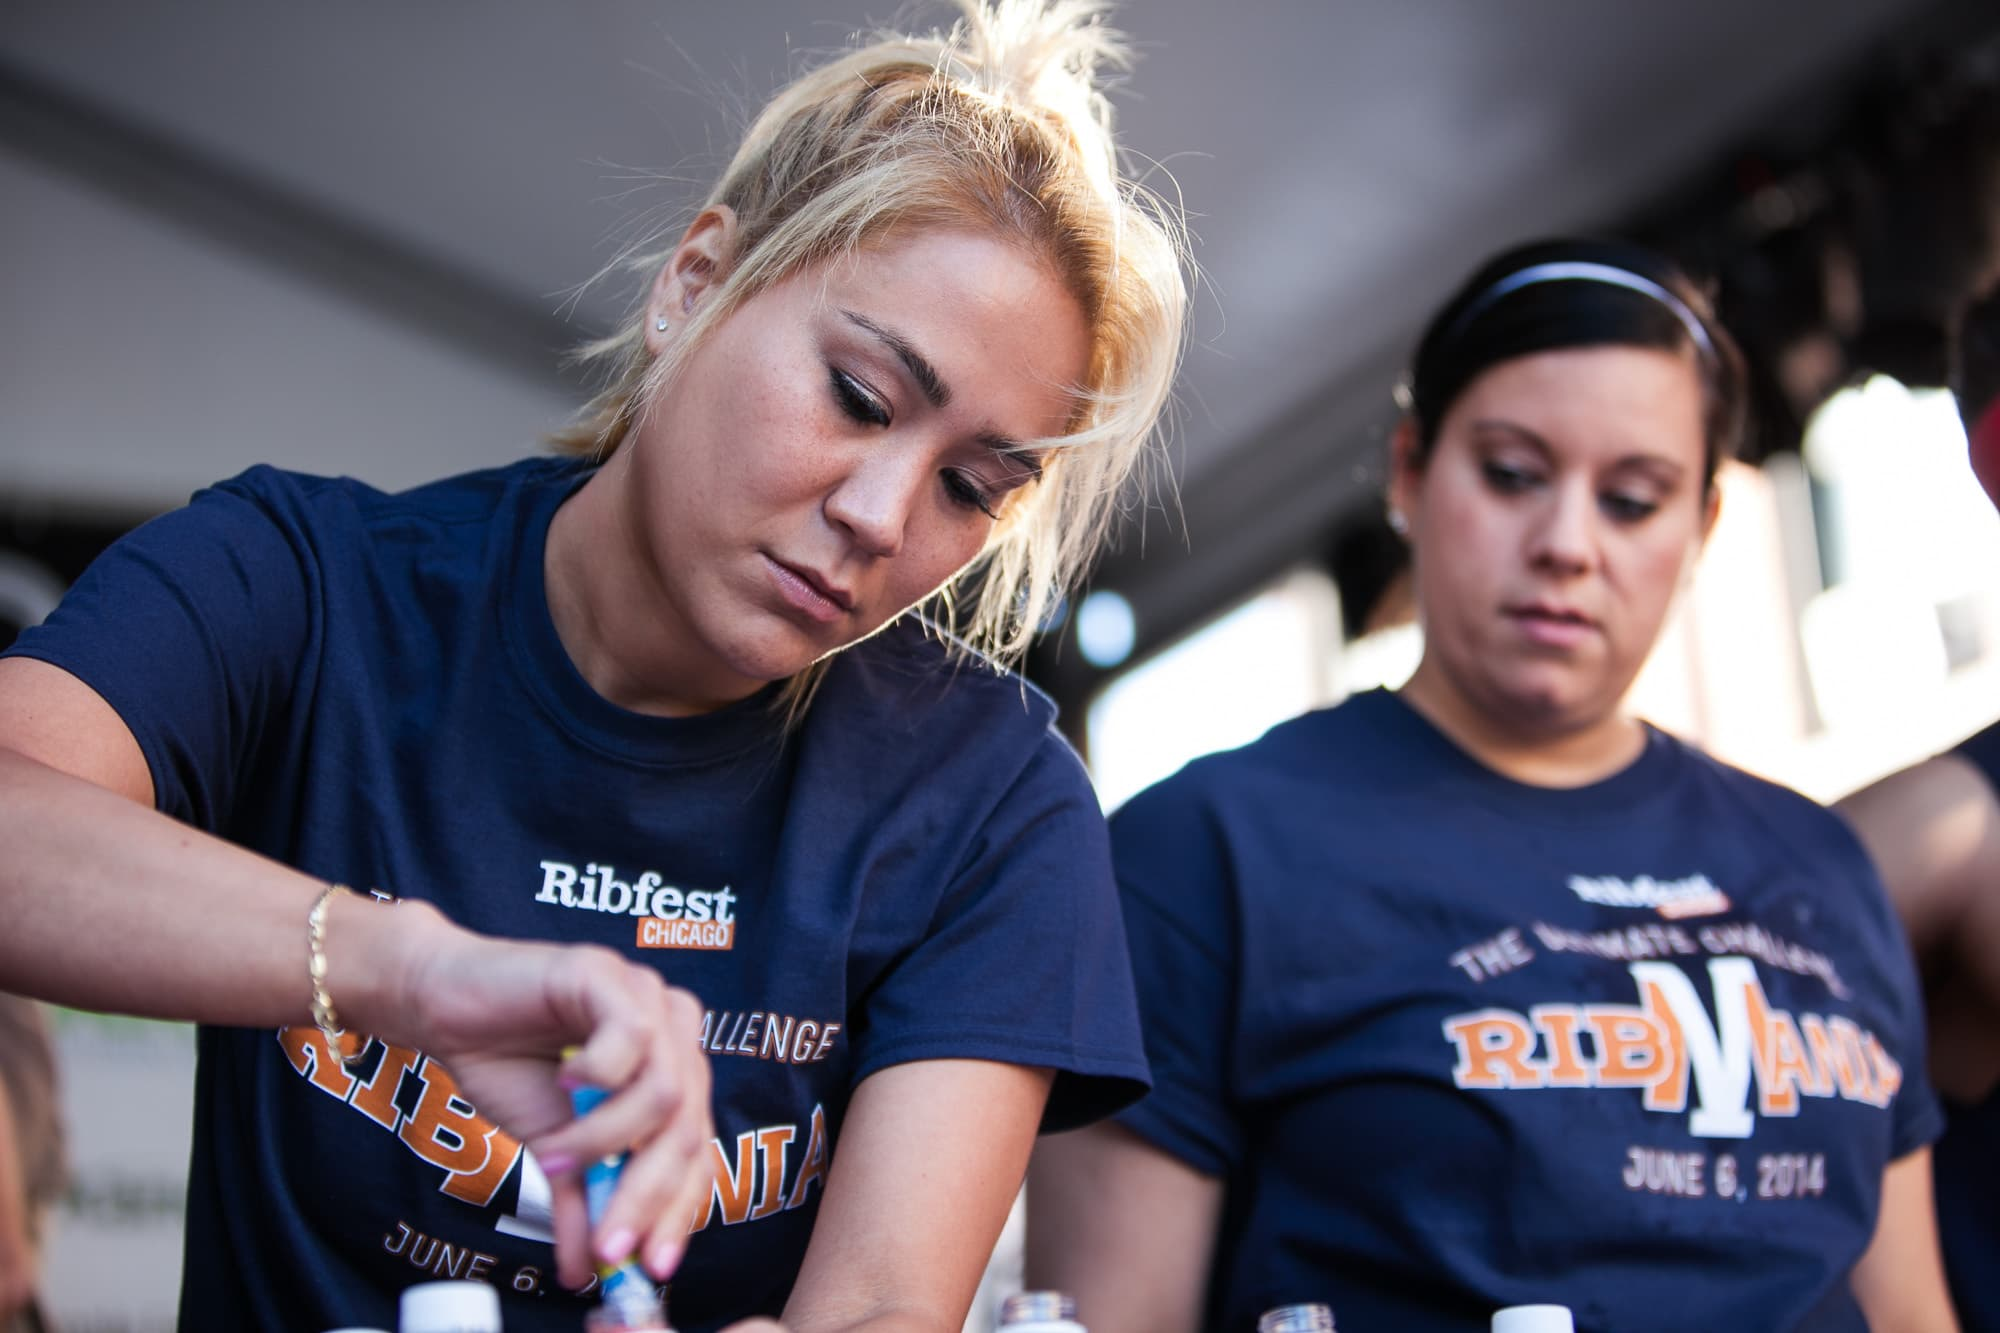 Miki Sudo prepares her drinks Ribmania Ribs Eating Contest at Ribfest Chicago.